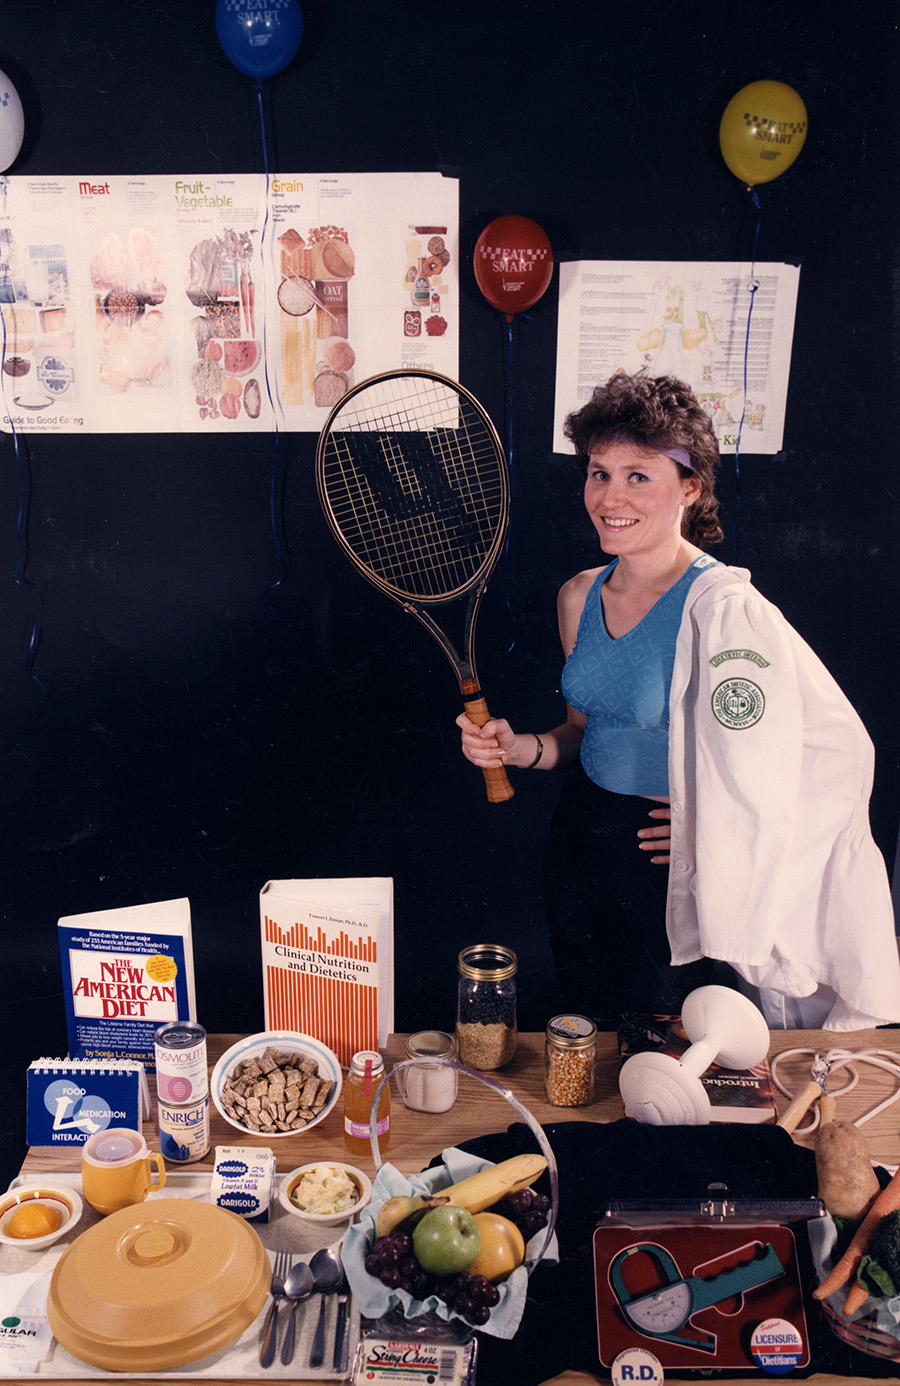 Teresa Jones, dietetic intern, poses with dietetic-related items, circa 1980s